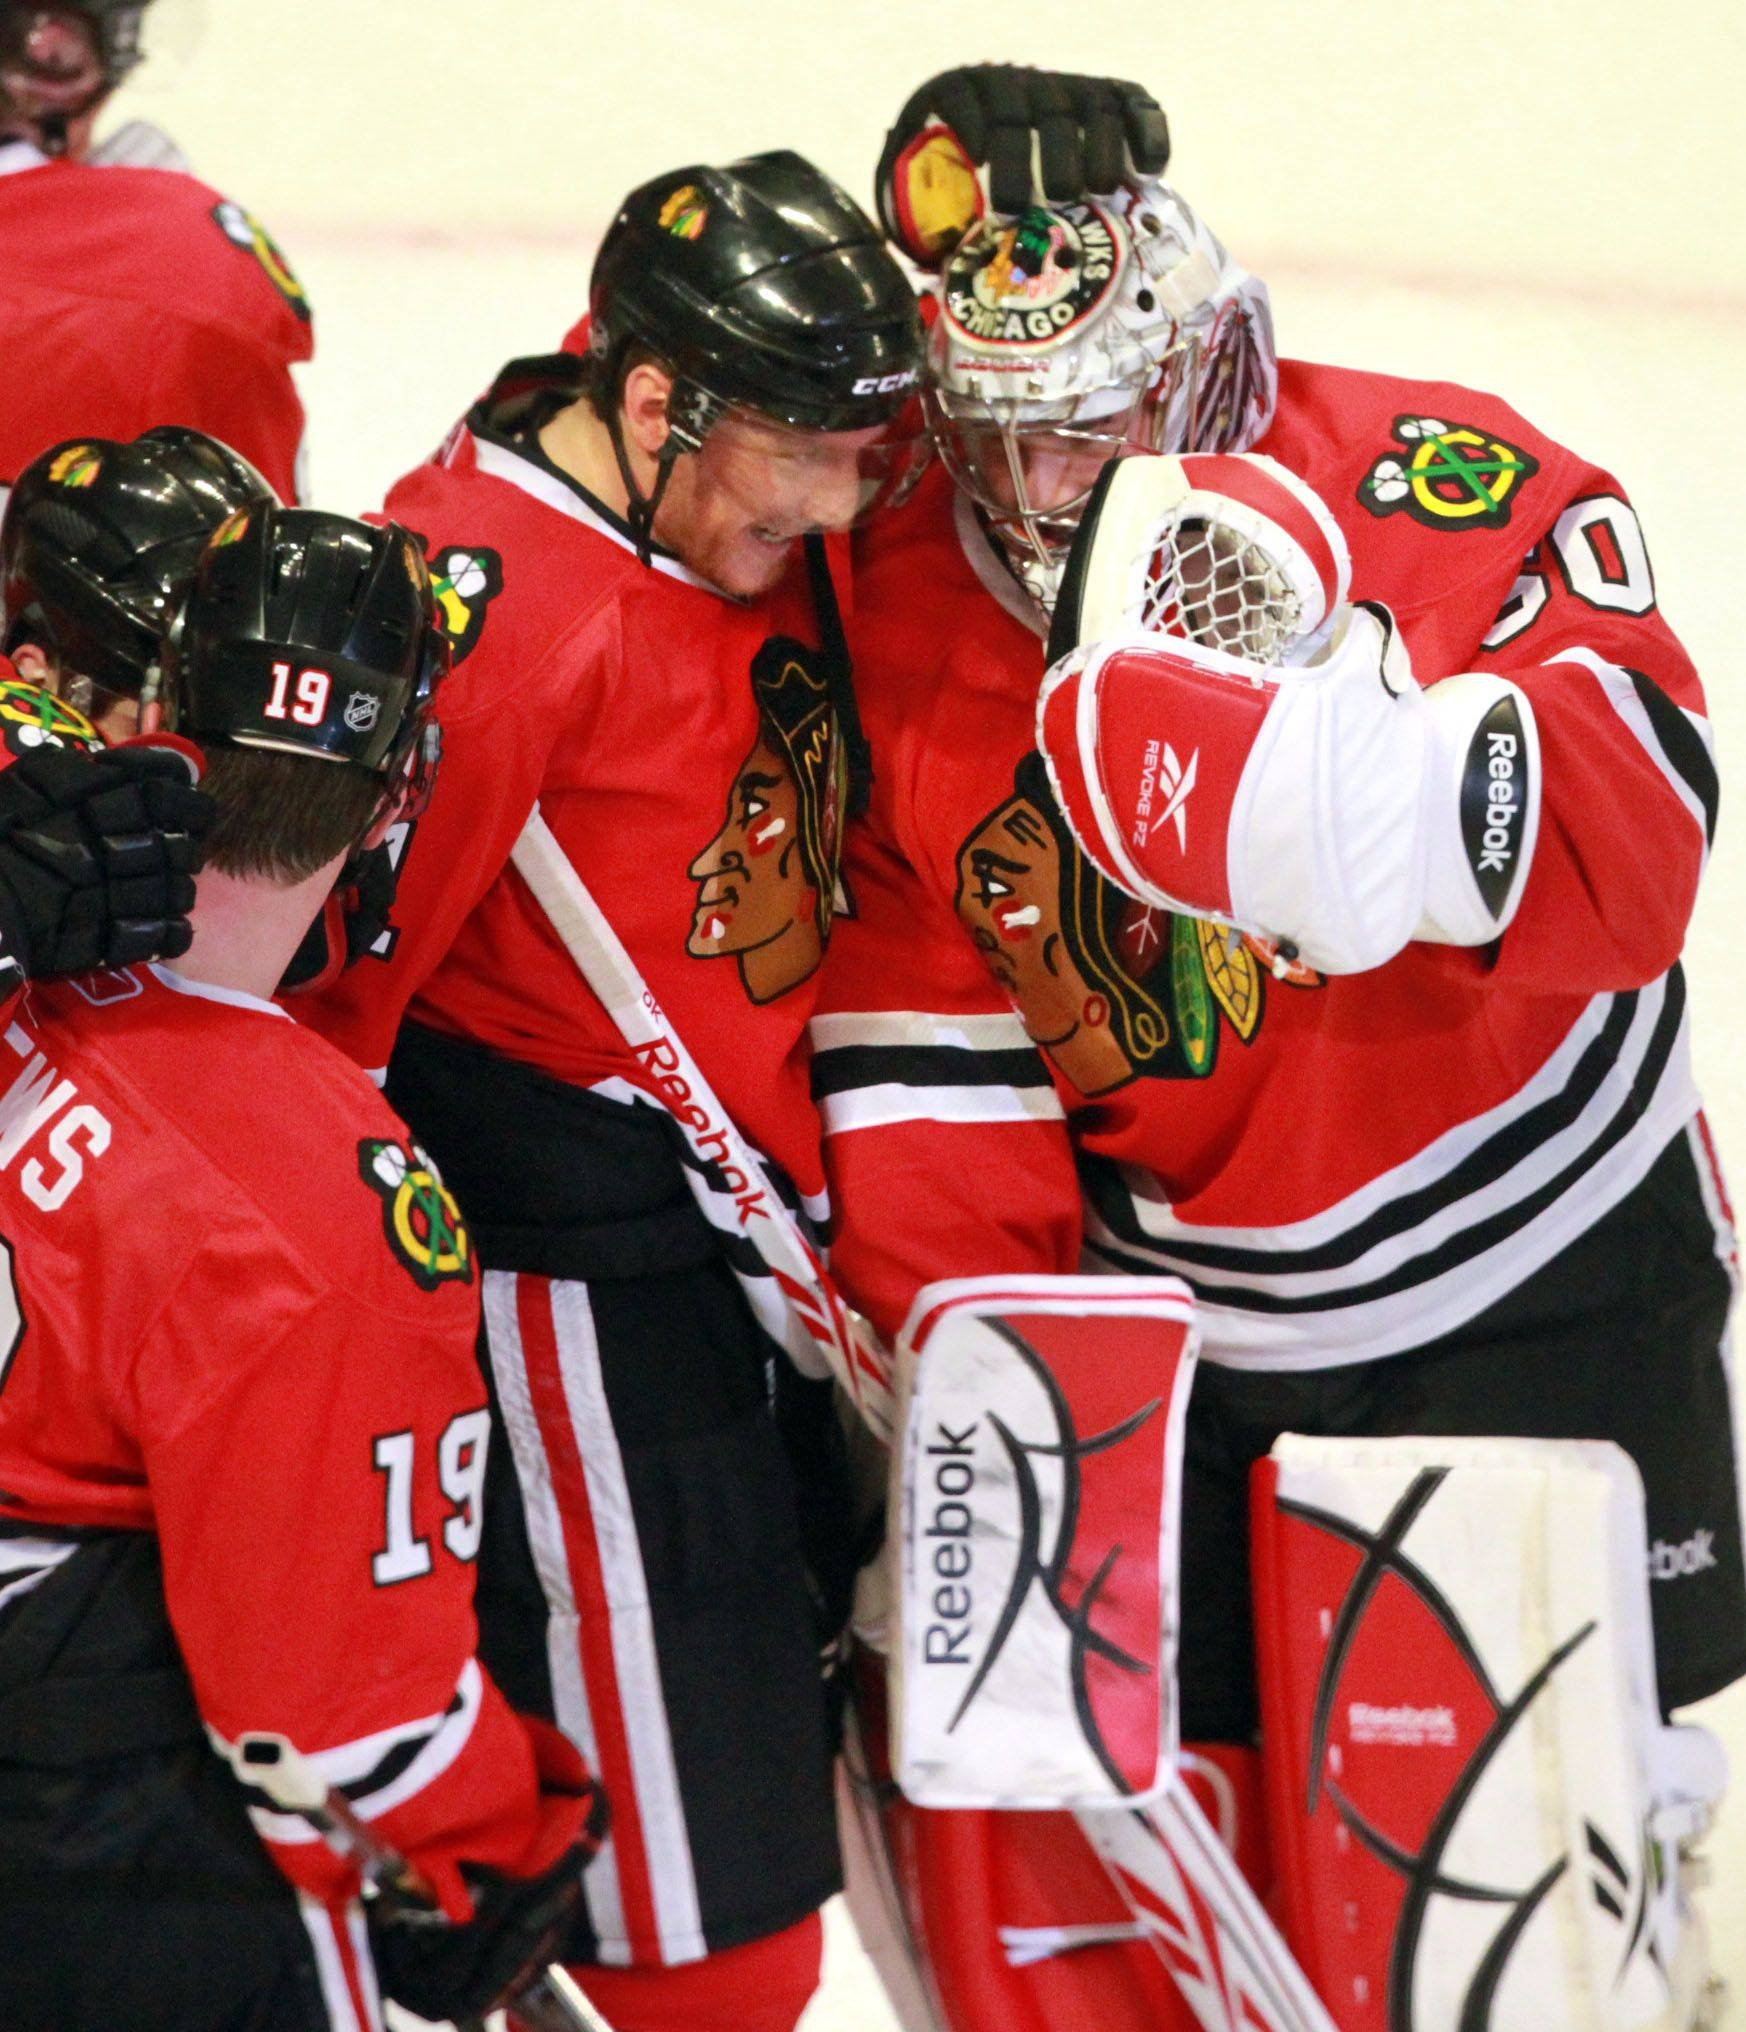 Blackhawks goalie Corey Crawford gets a hand from Marian Hossa after Sunday's 4-3 win in overtime against the Vancouver Canucks in Game 6 at the United Center.